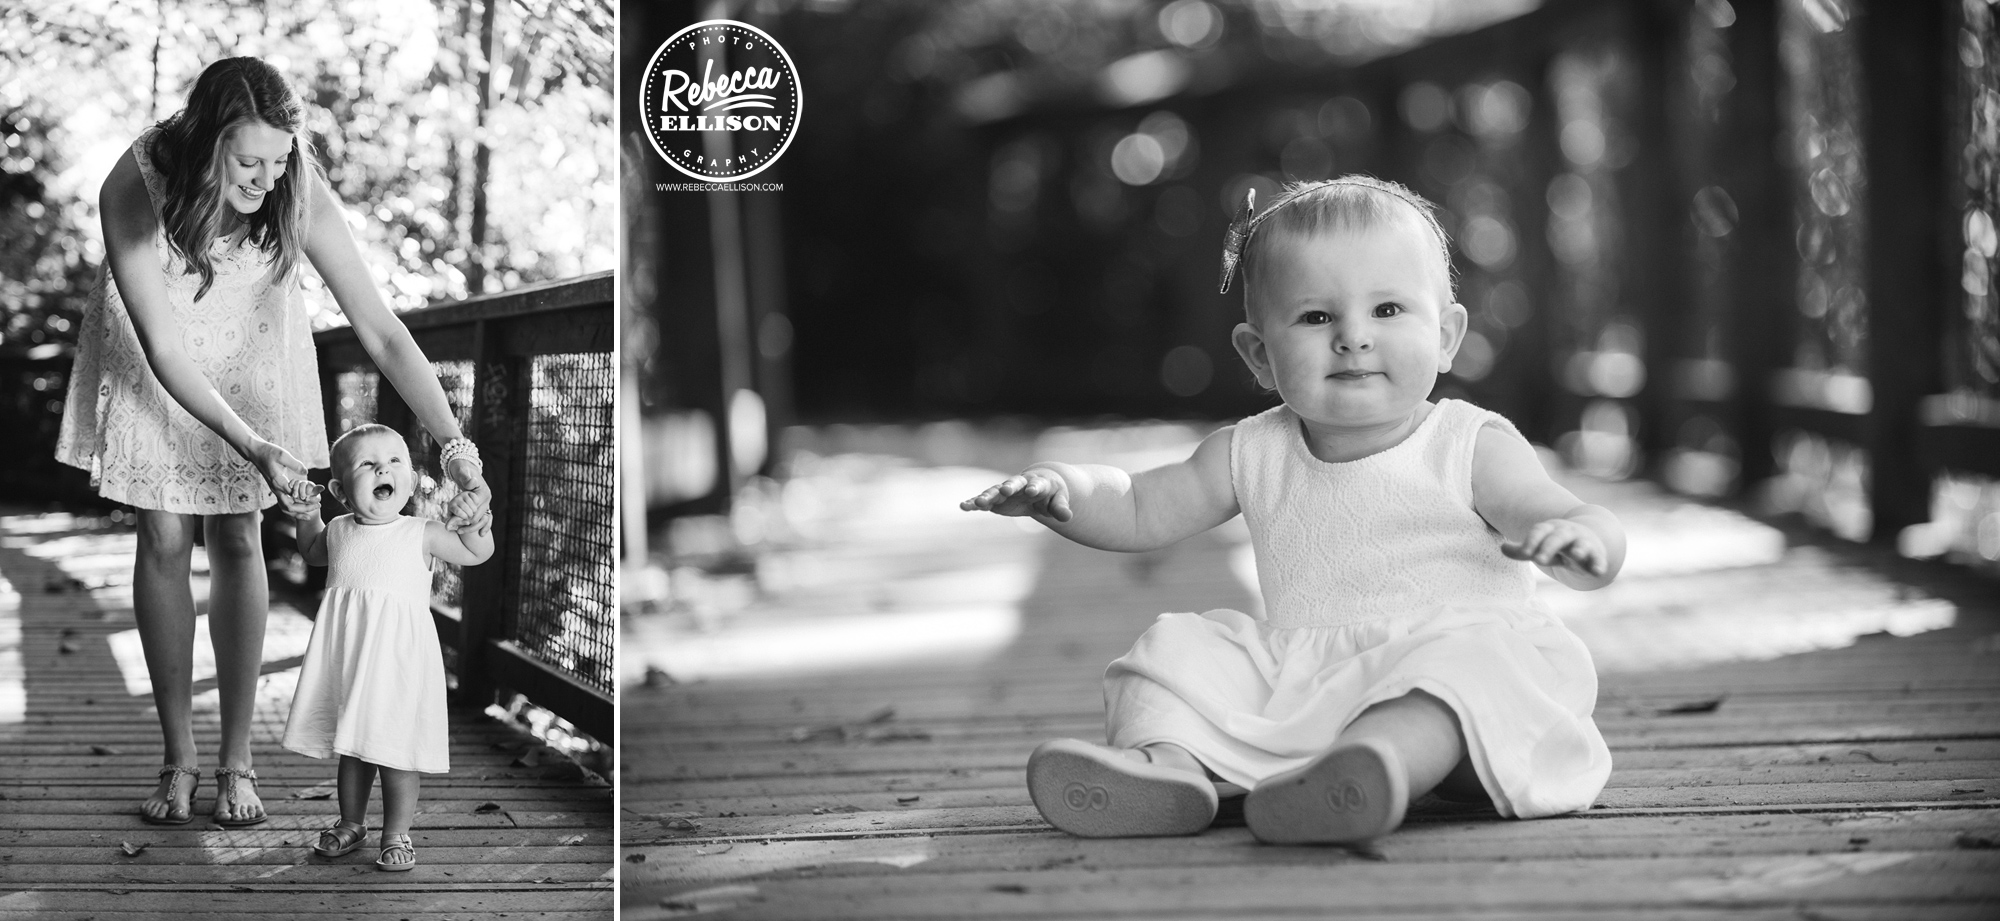 1 year old girls during a family portrait session at Carkeek Park in Seattle photographed by Rebecca Ellison Photography